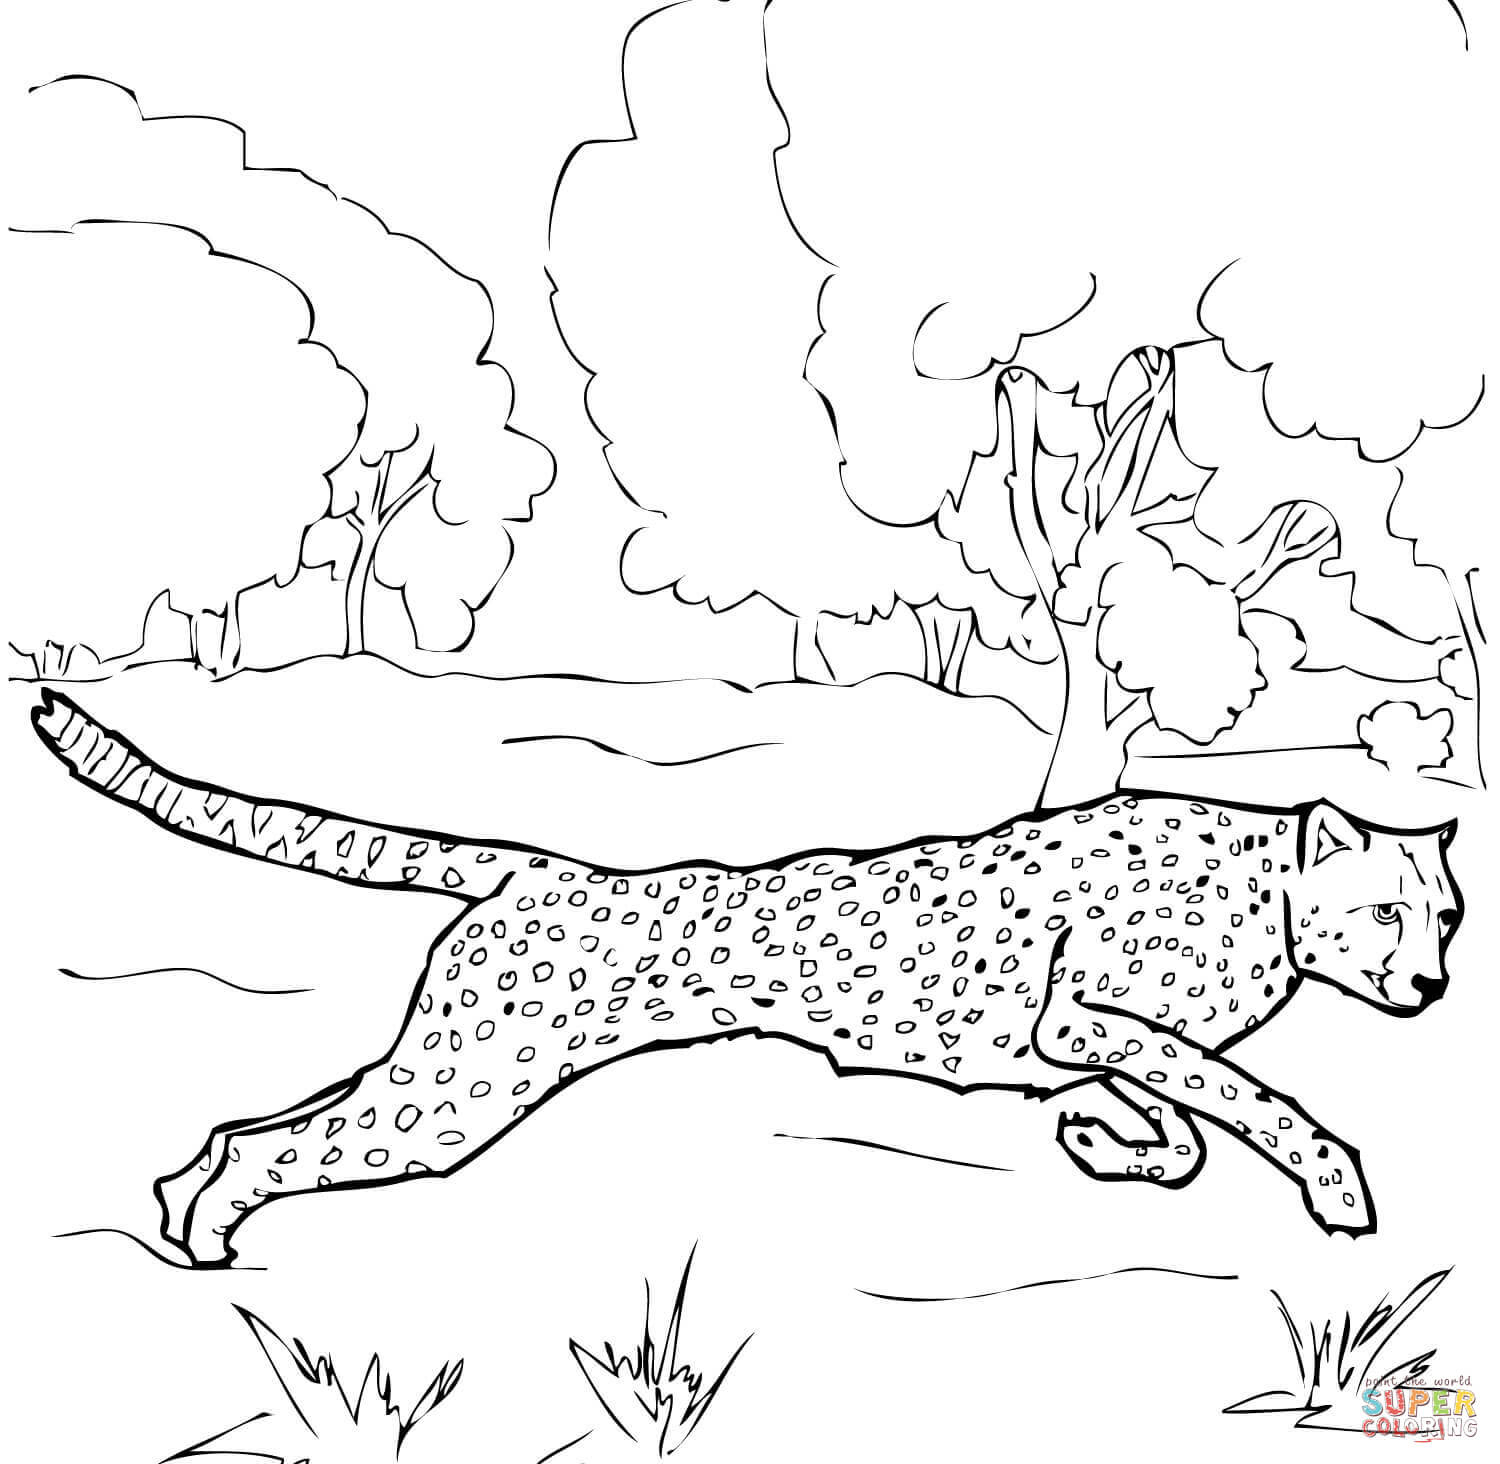 Running Cheetah Coloring Page | Free Printable Coloring Pages - Free Printable Cheetah Pictures